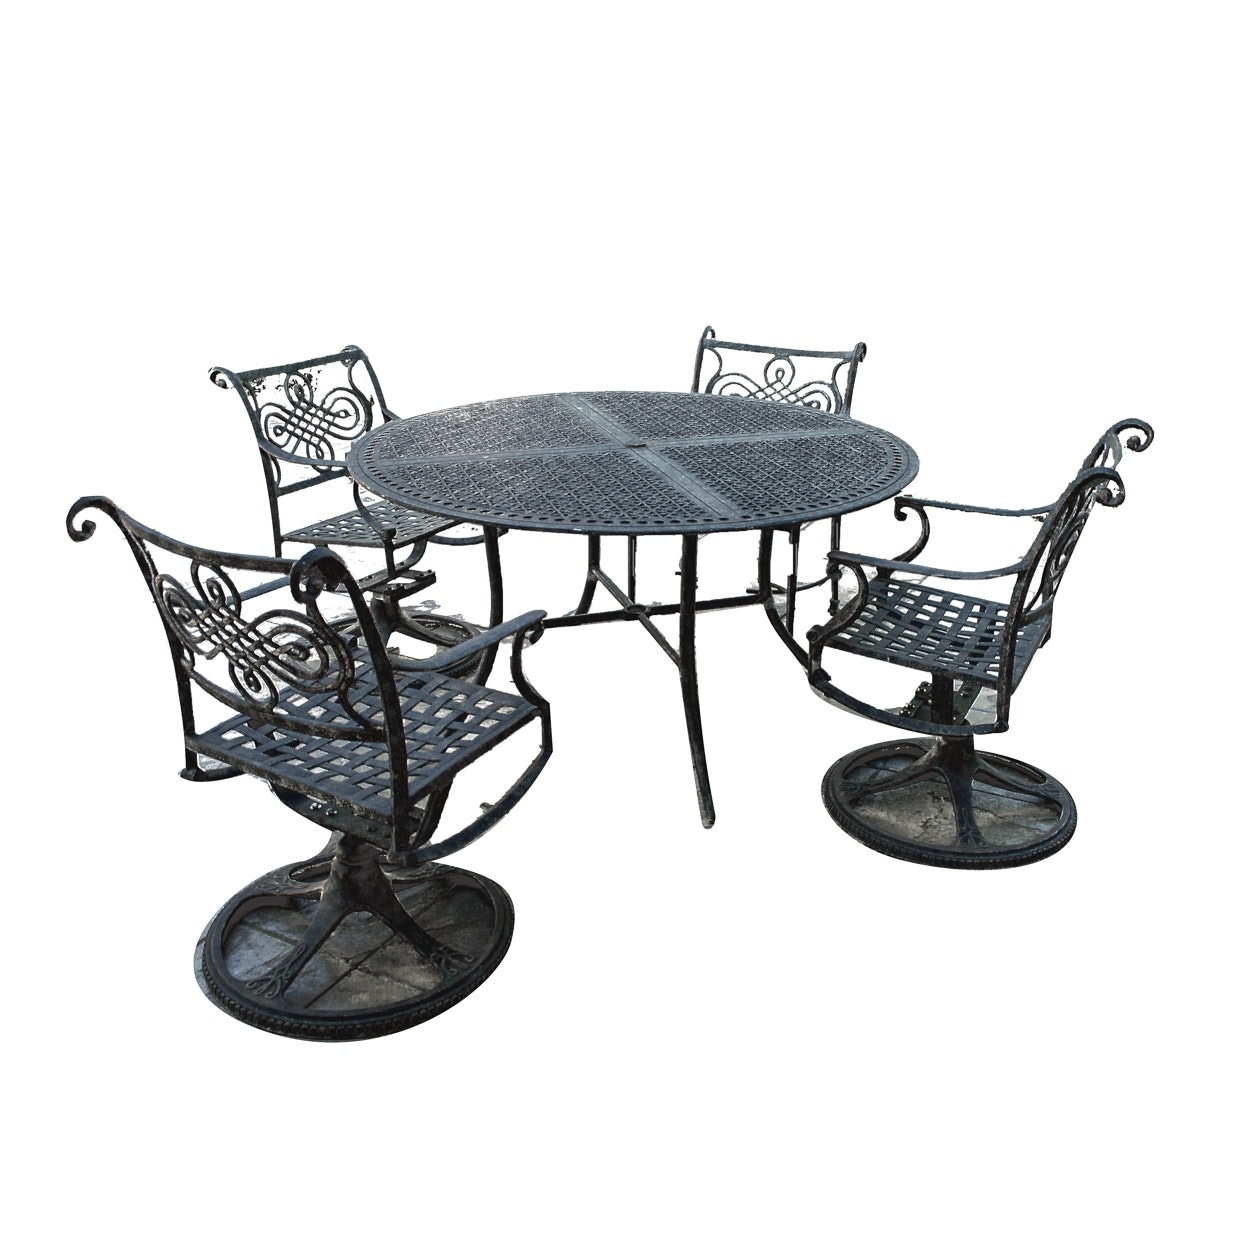 Scrolled Metal Outdoor Patio Dining Set